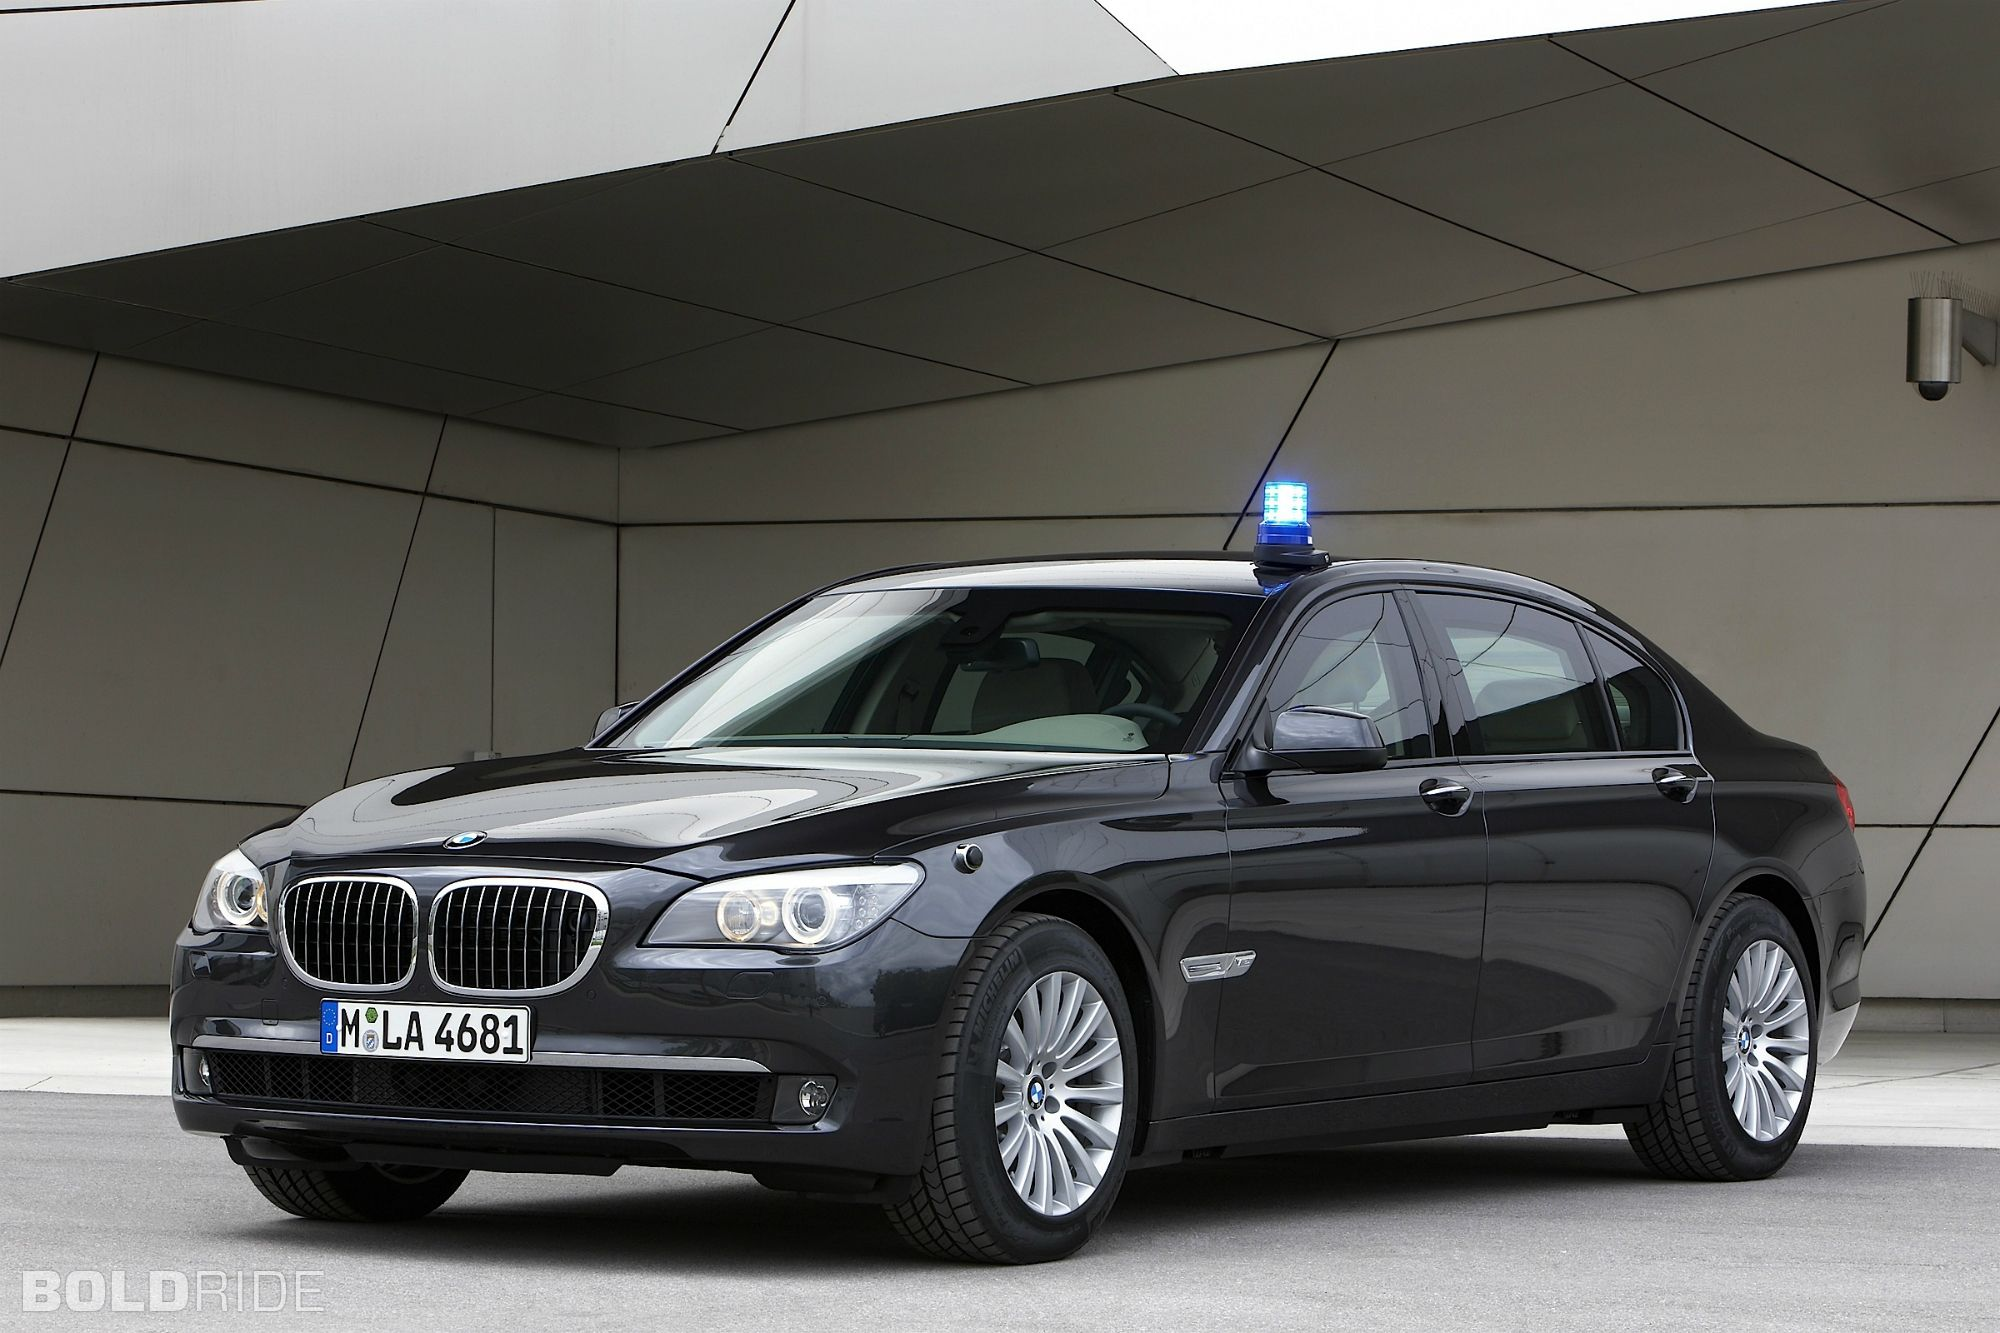 2010 BMW 7-Series High Security - BMW Security Vehicles: Overview ...